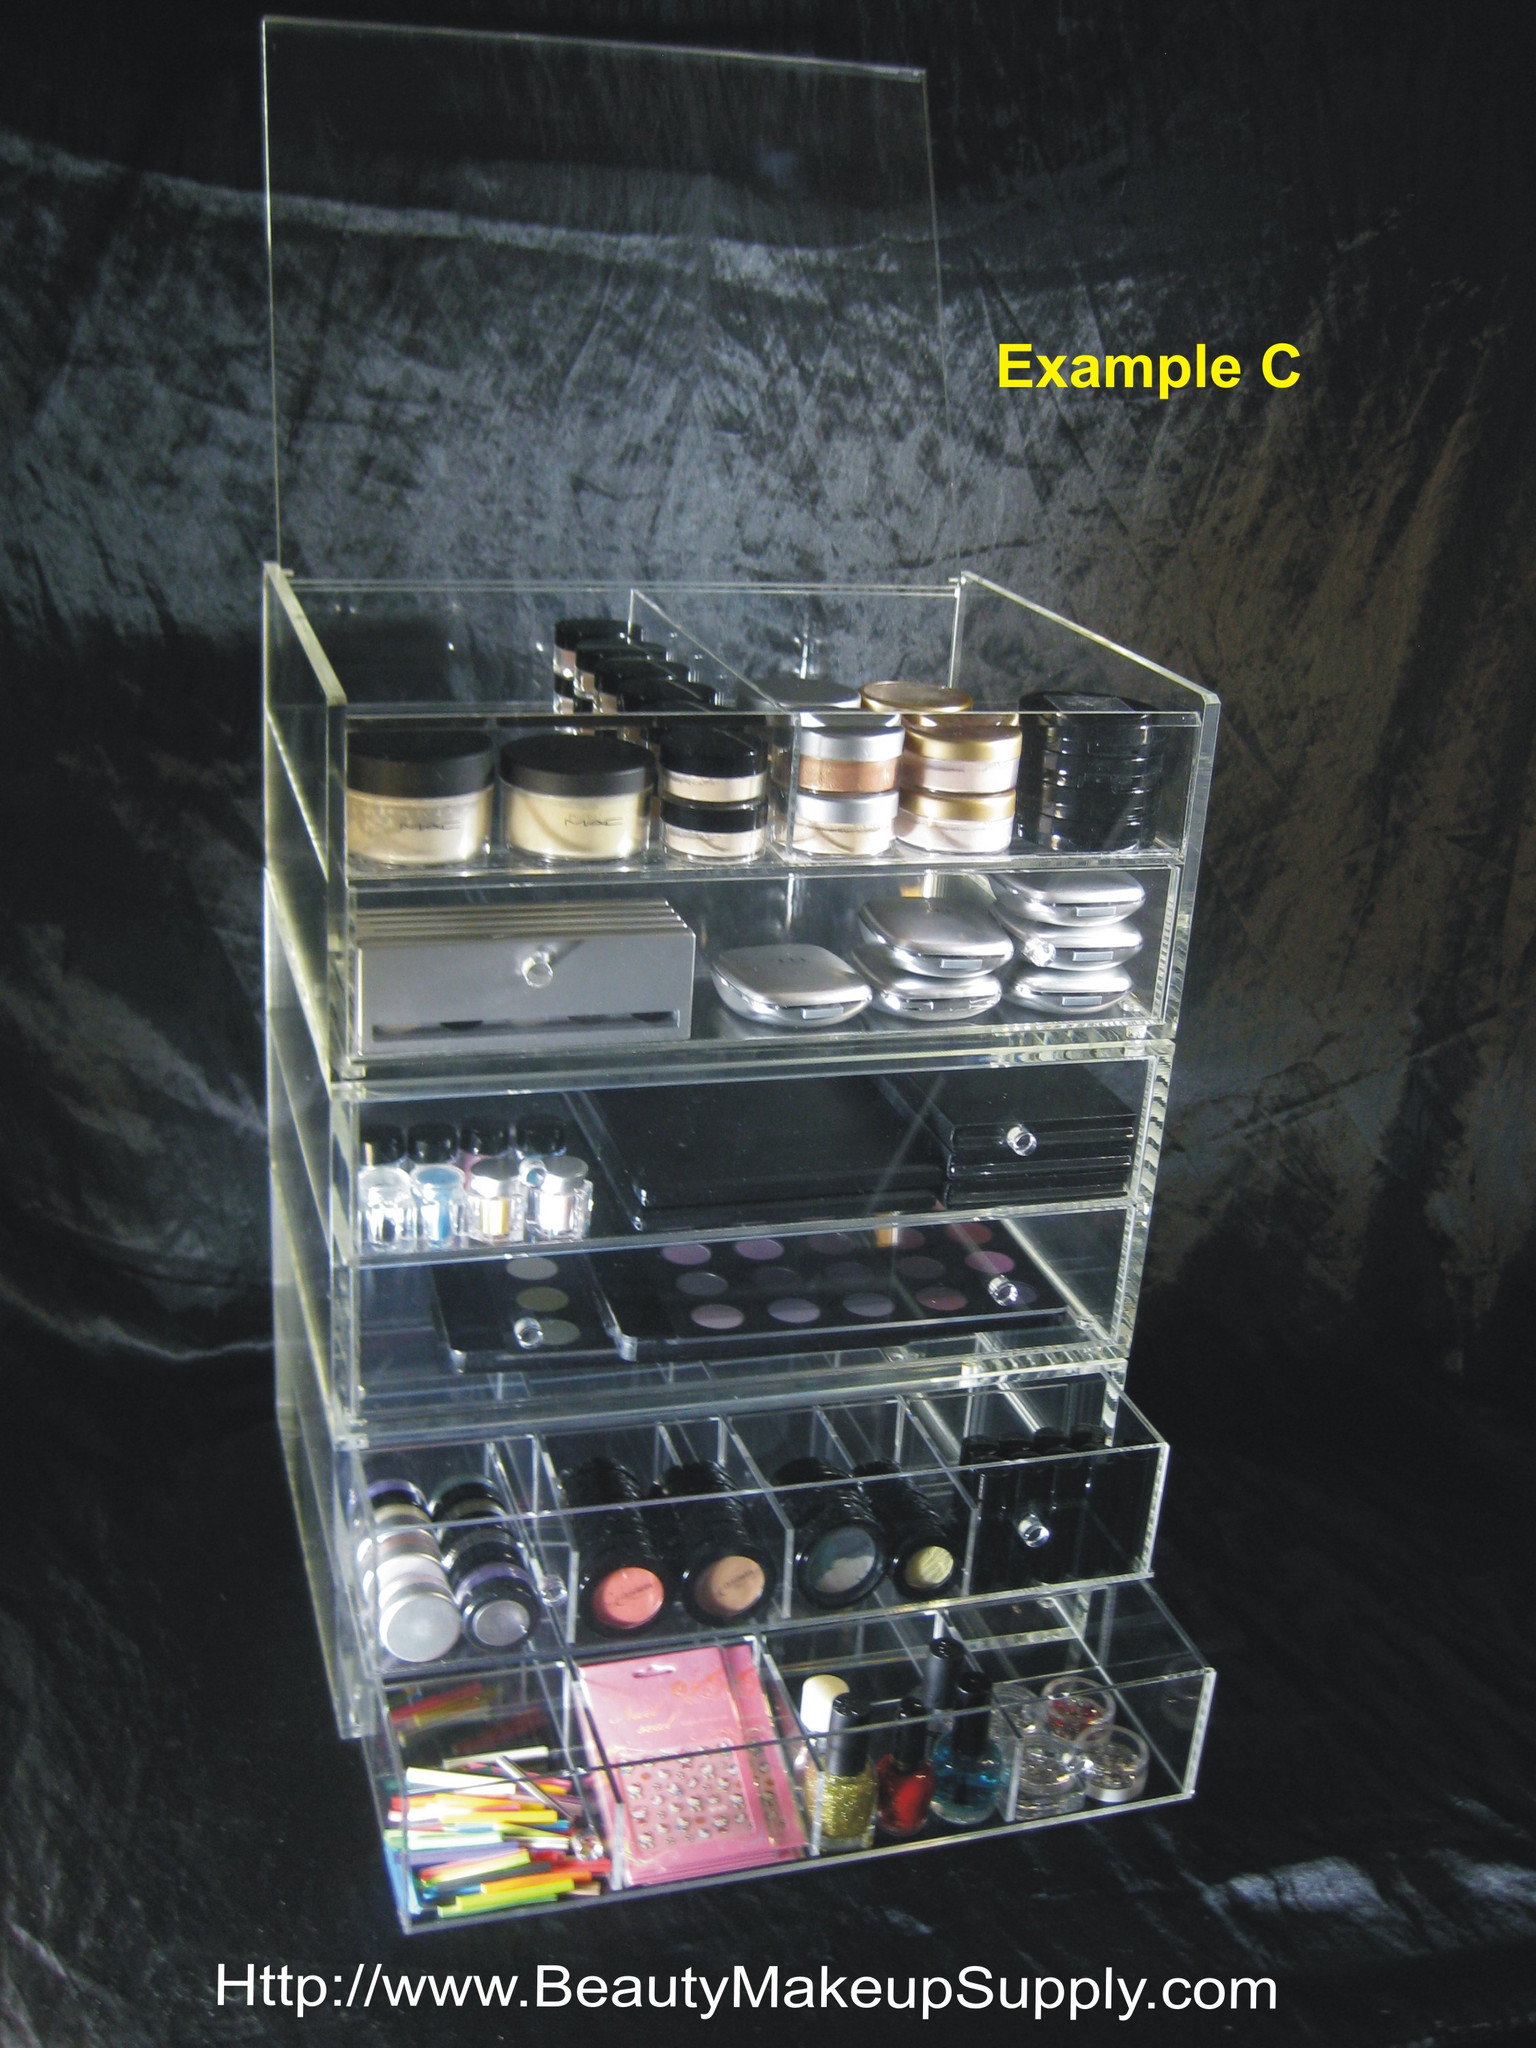 20% Off Acrylic Organizers - Special Promotions at Beauty Makeup Supply